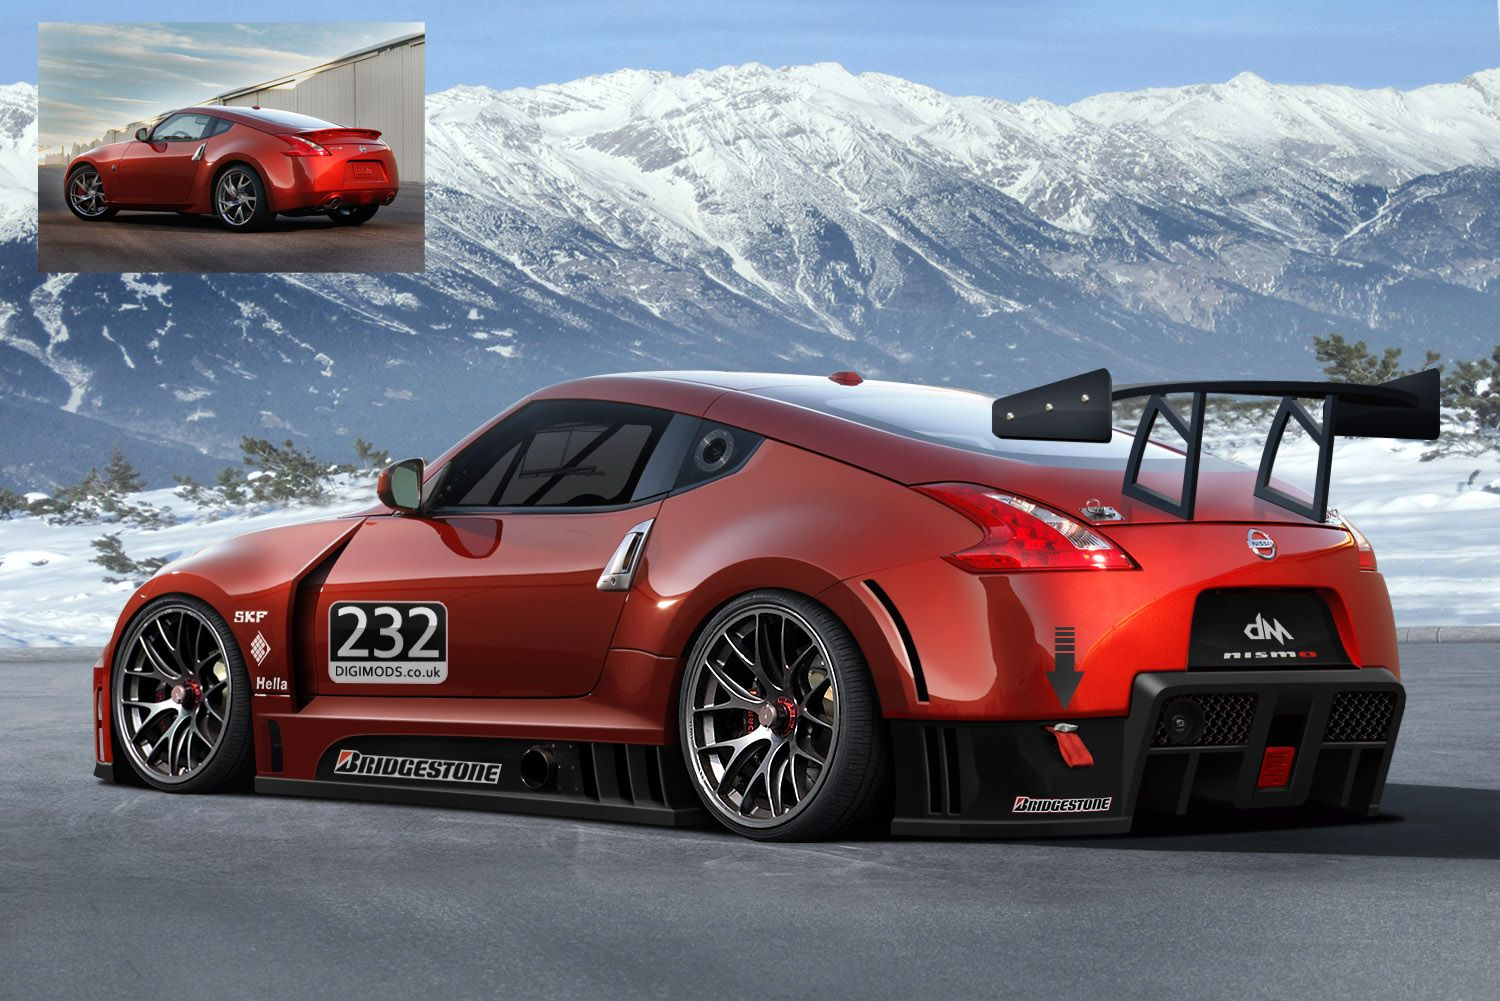 370z racing above average rides pinterest nissan cars and 370z racing vanachro Choice Image